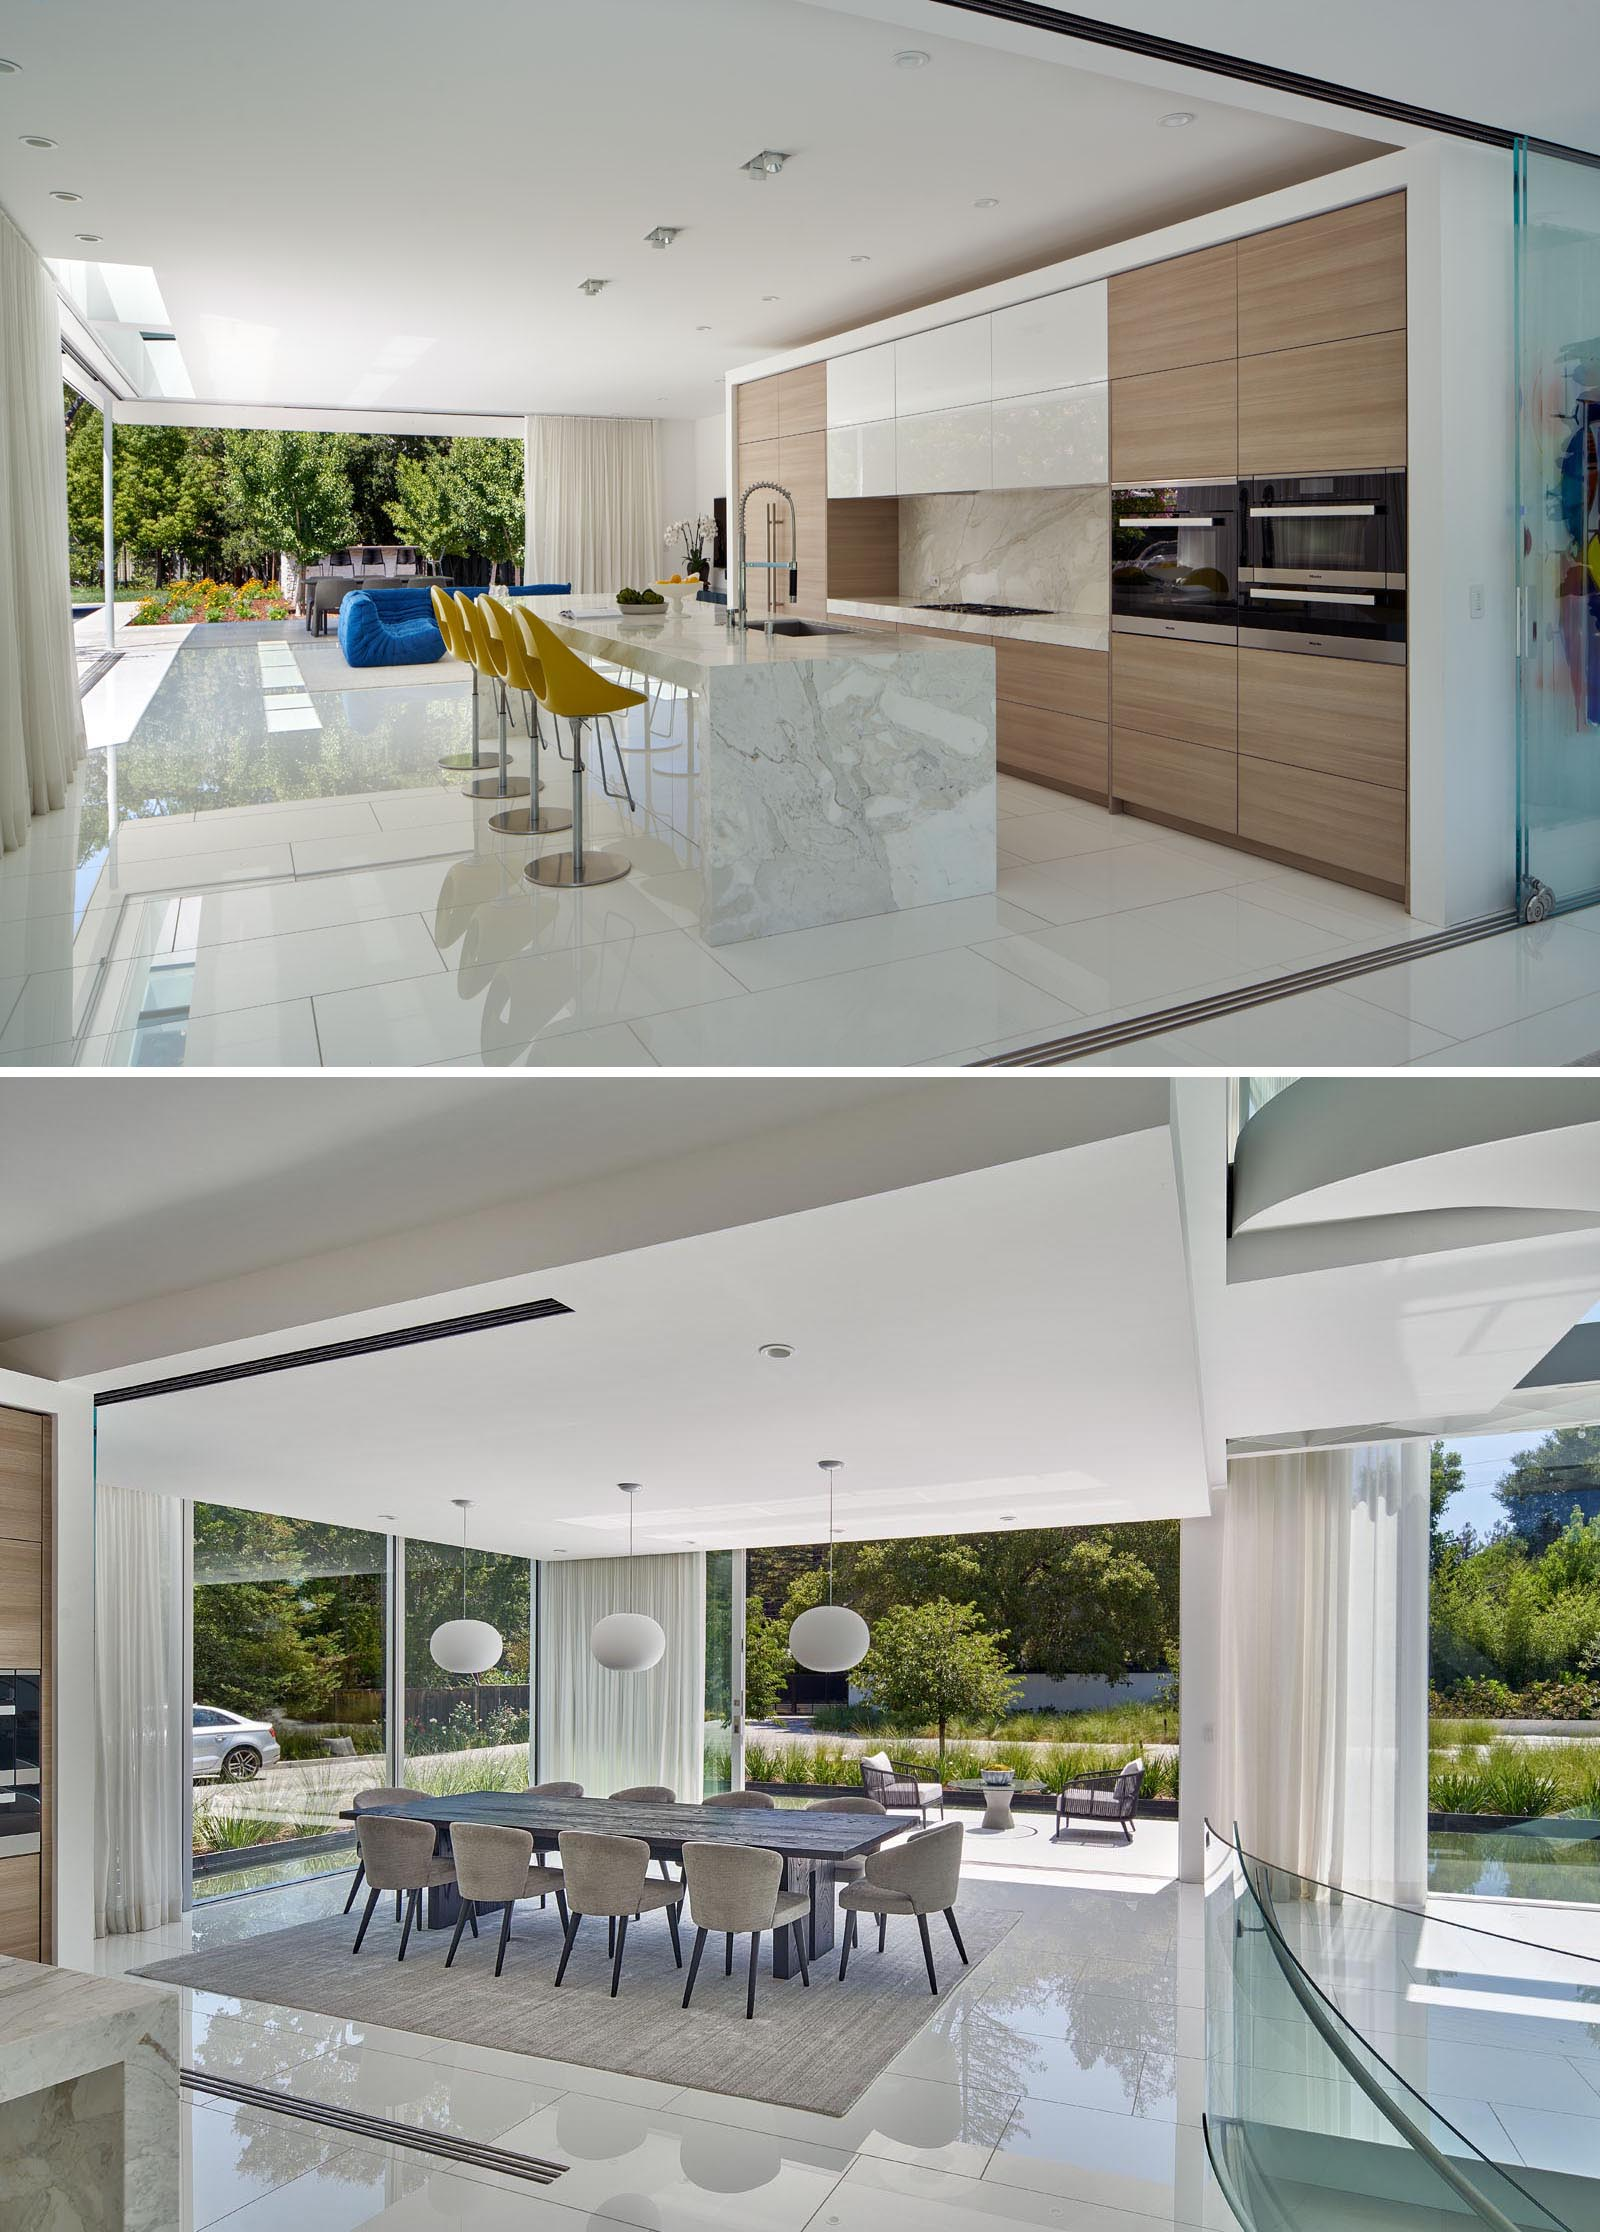 The kitchen and dining room are located next to each other, with kitchen featuring hardware free wood cabinets and Calacatta Marble slab countertops.